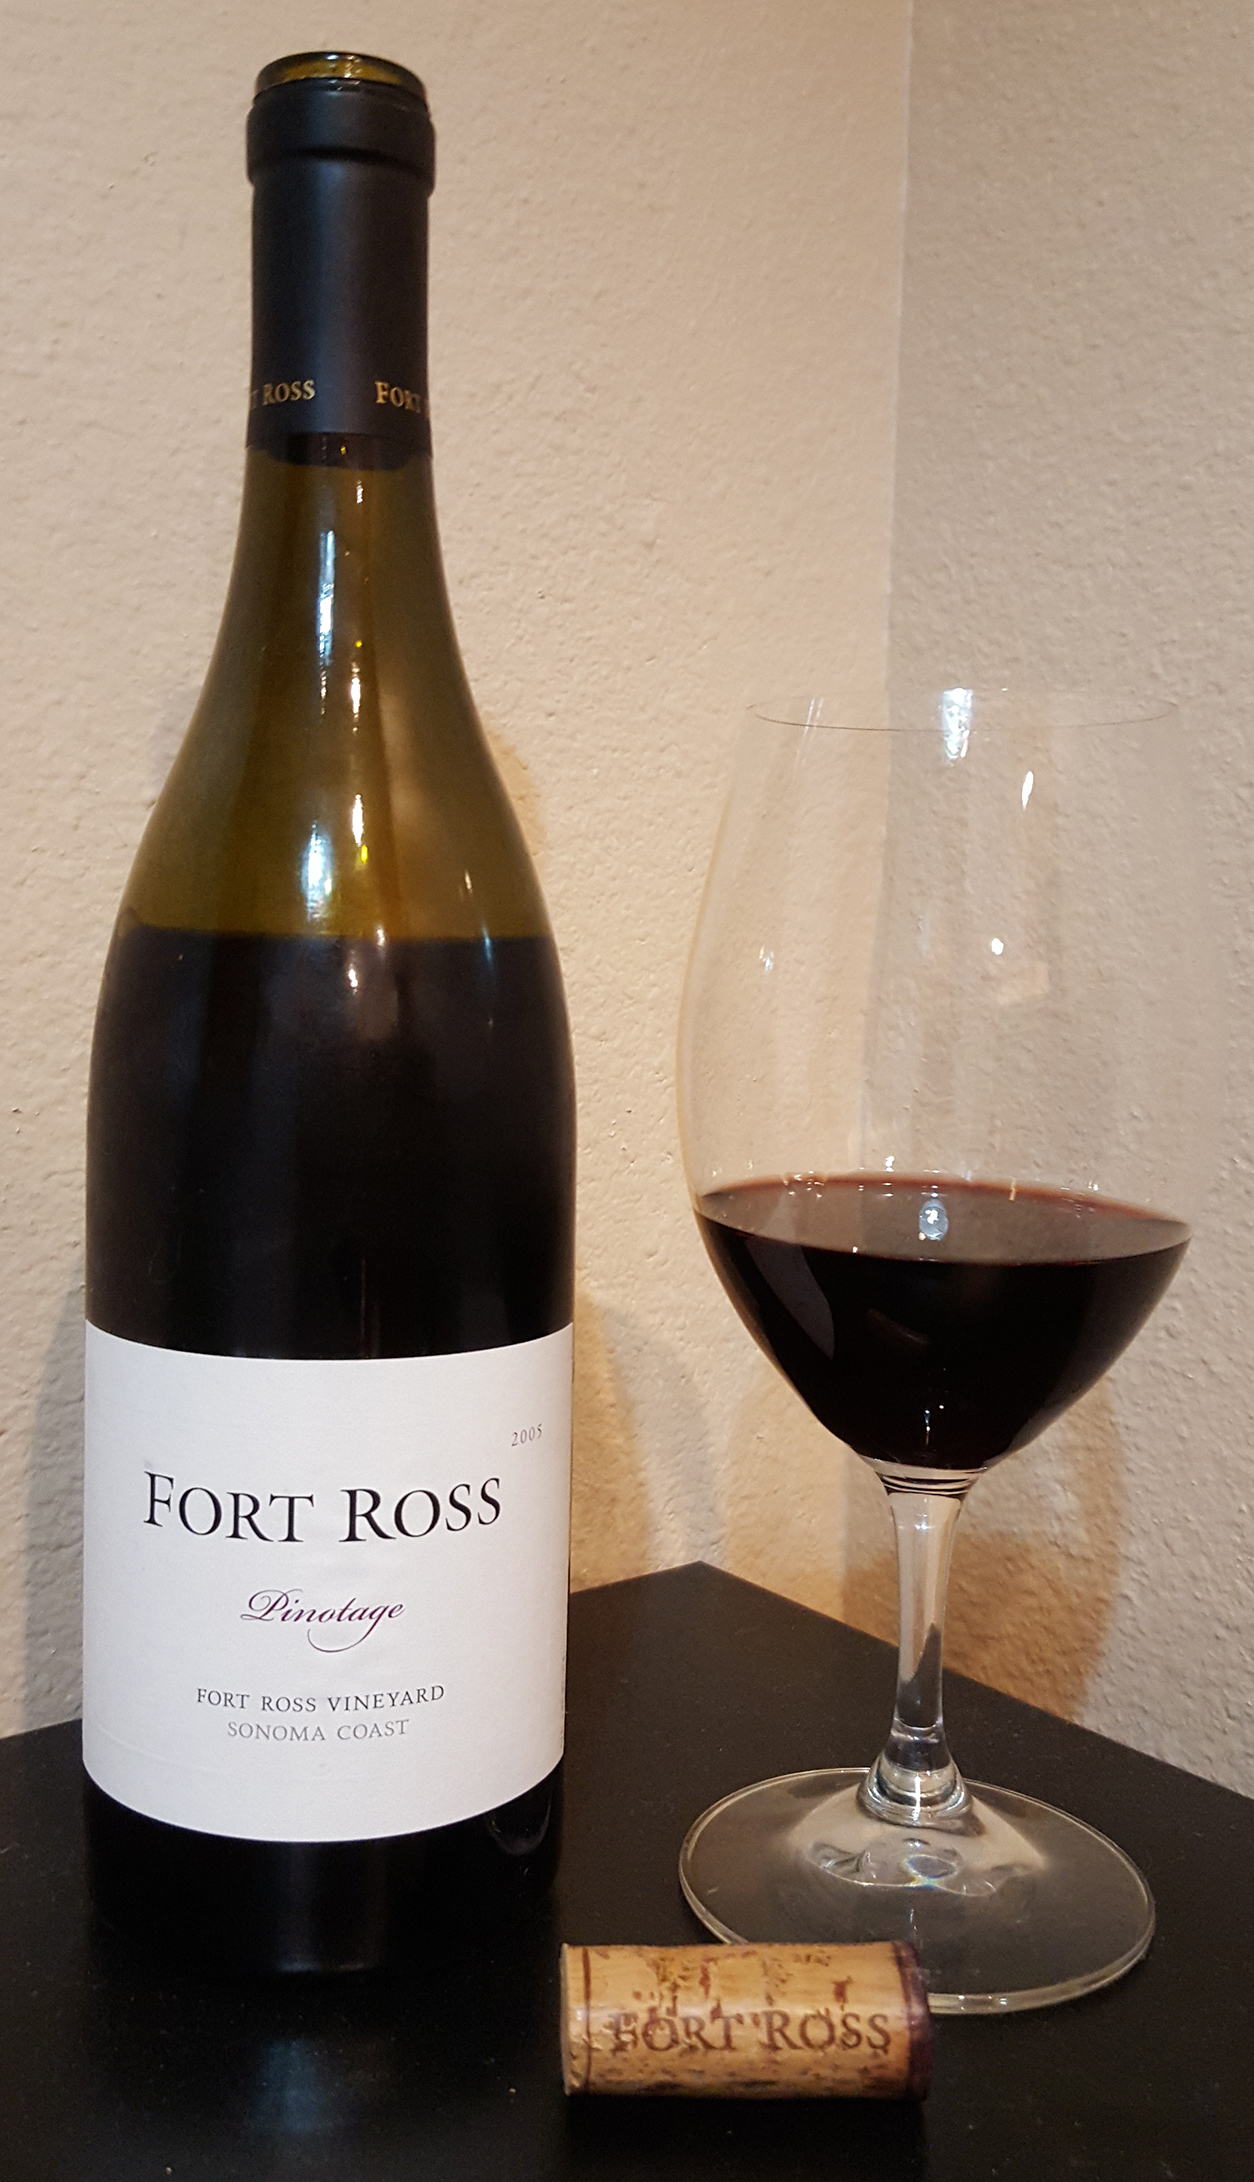 Fort Ross Pinotage 2005